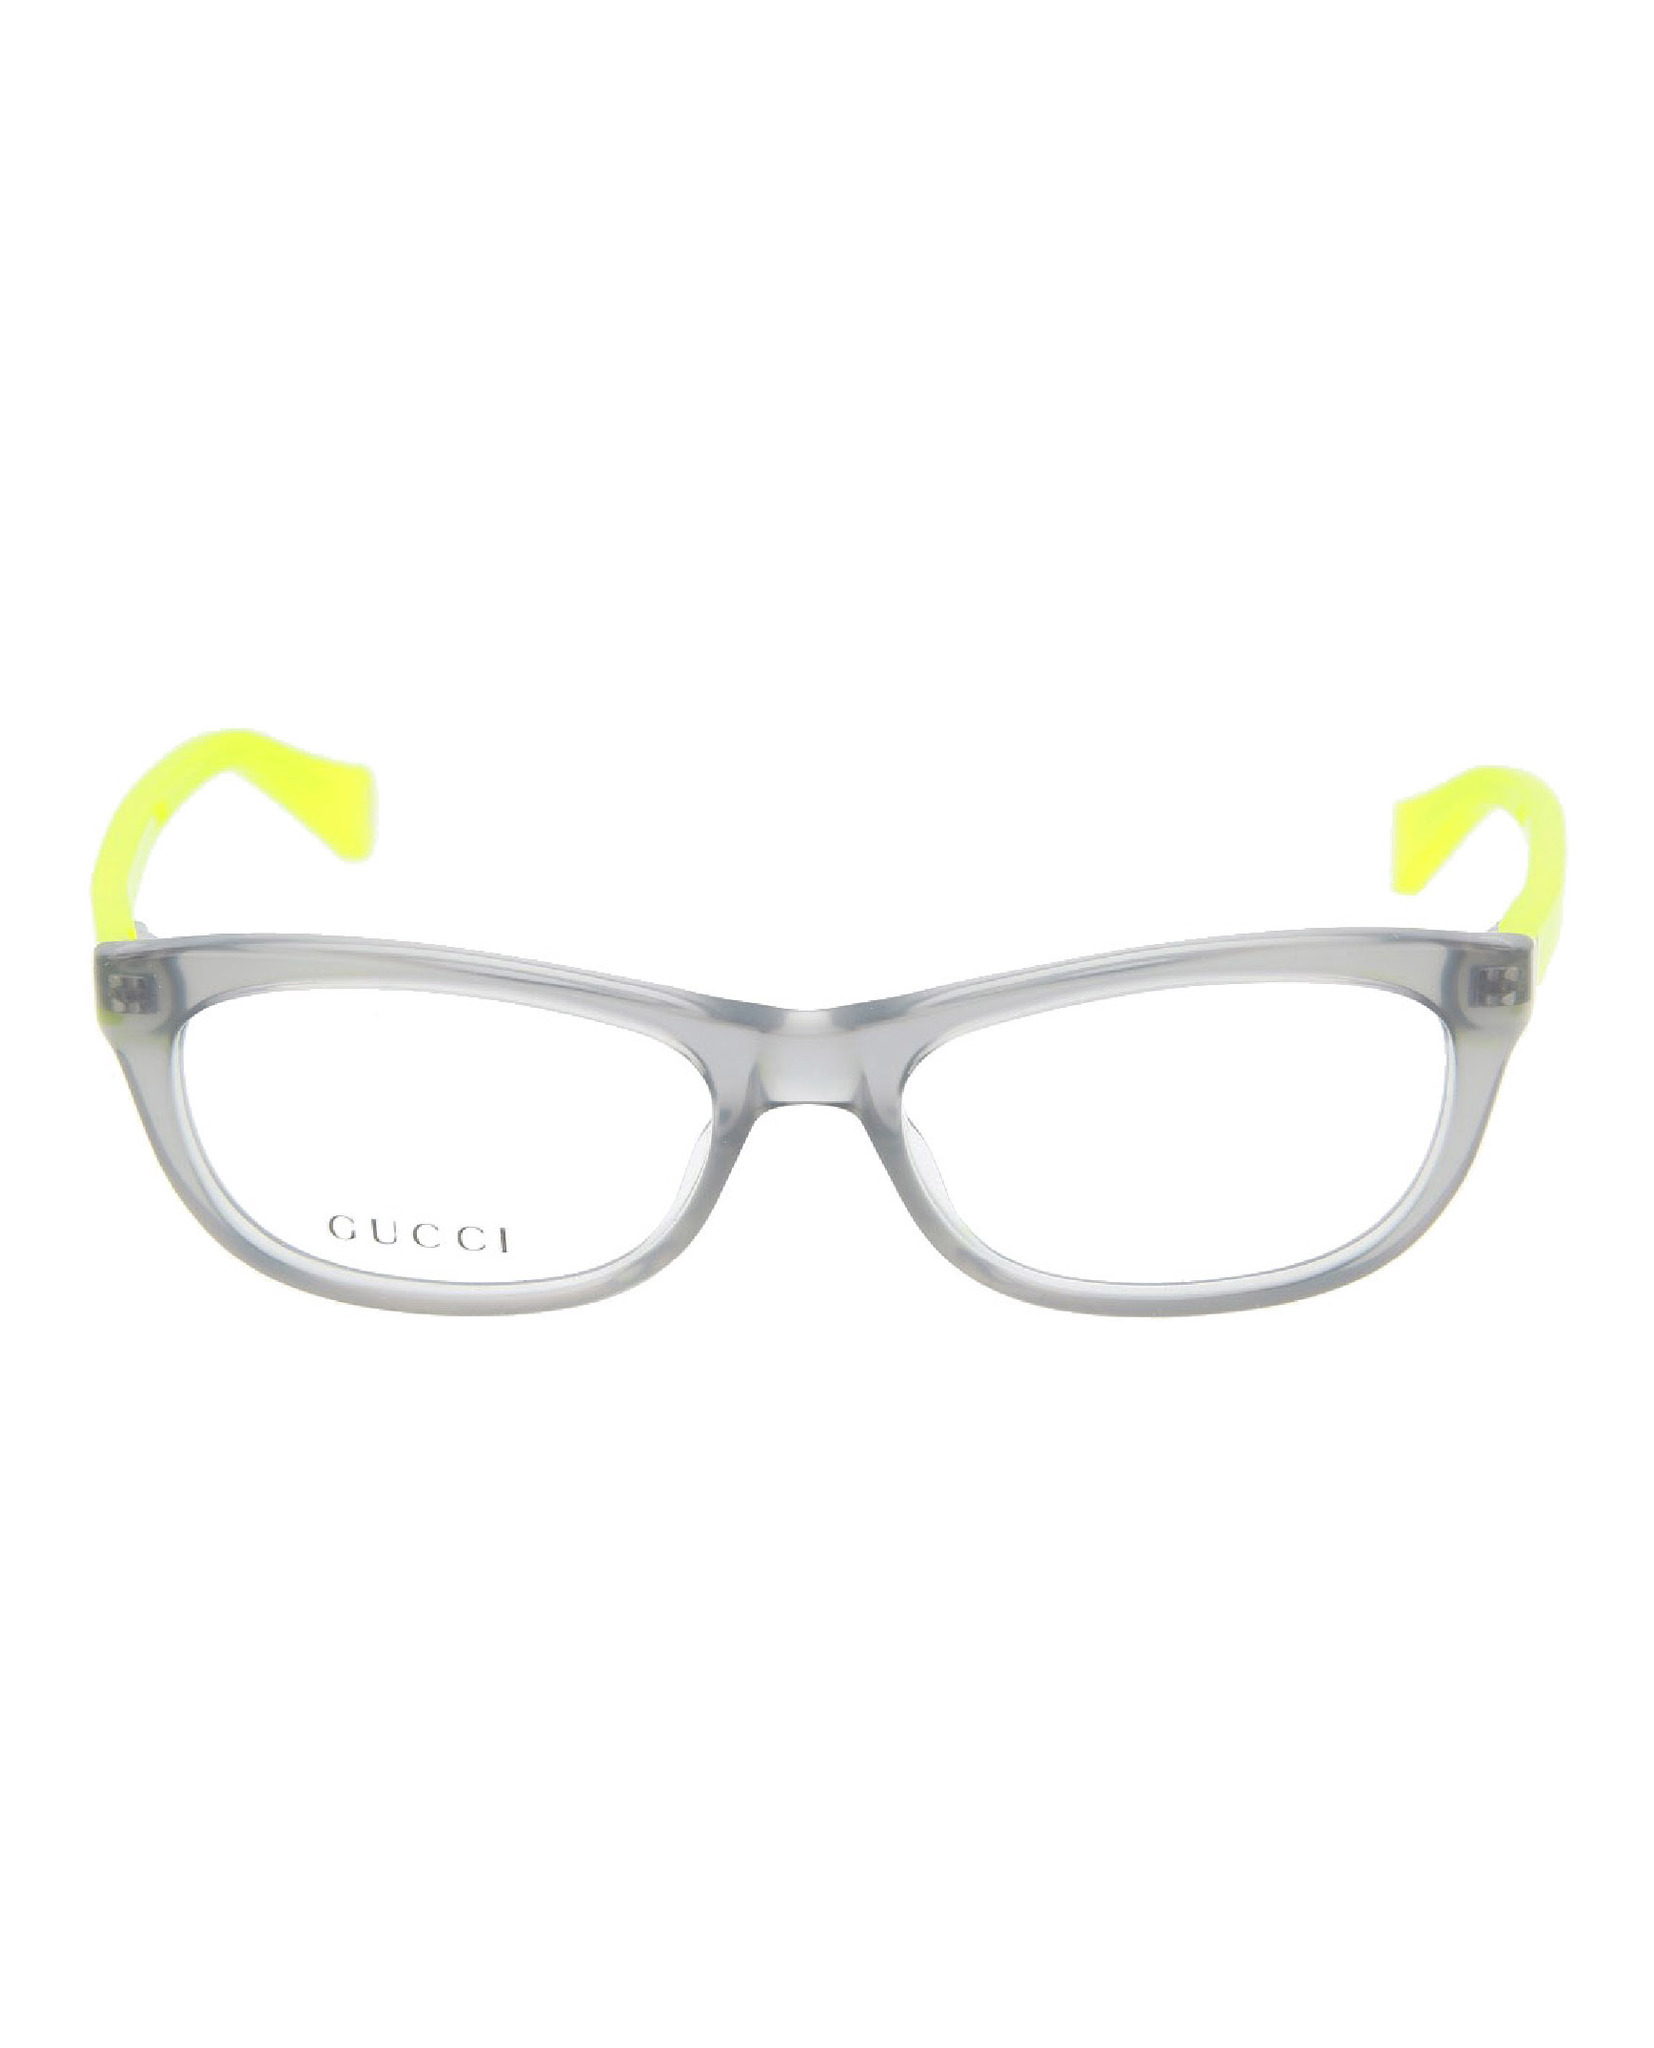 27cadb6e00f Gucci Kids Round Oval Optical Frames GG5007C-1142310UV-4615